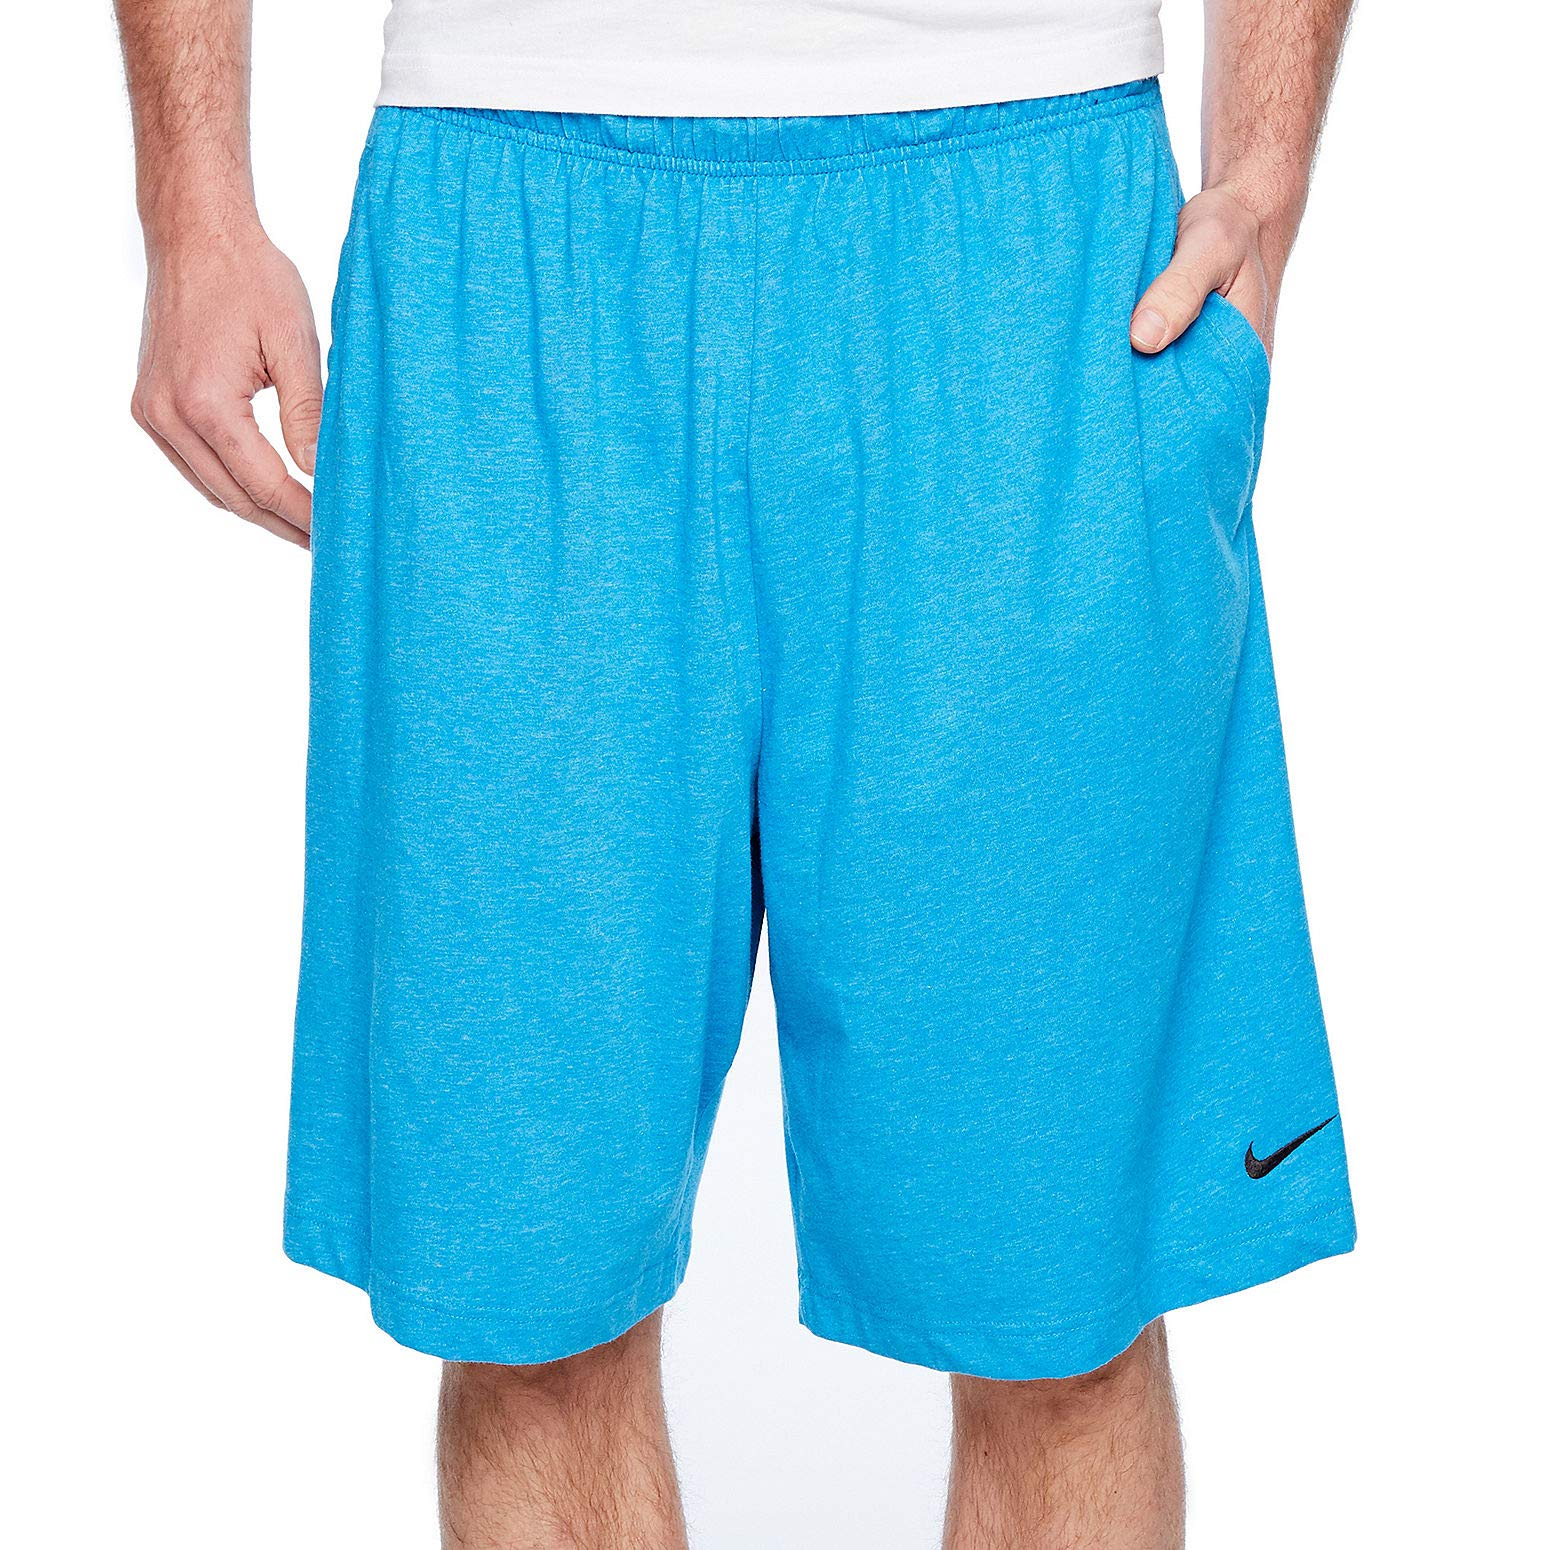 Nike Men's Big and Tall Training Shorts